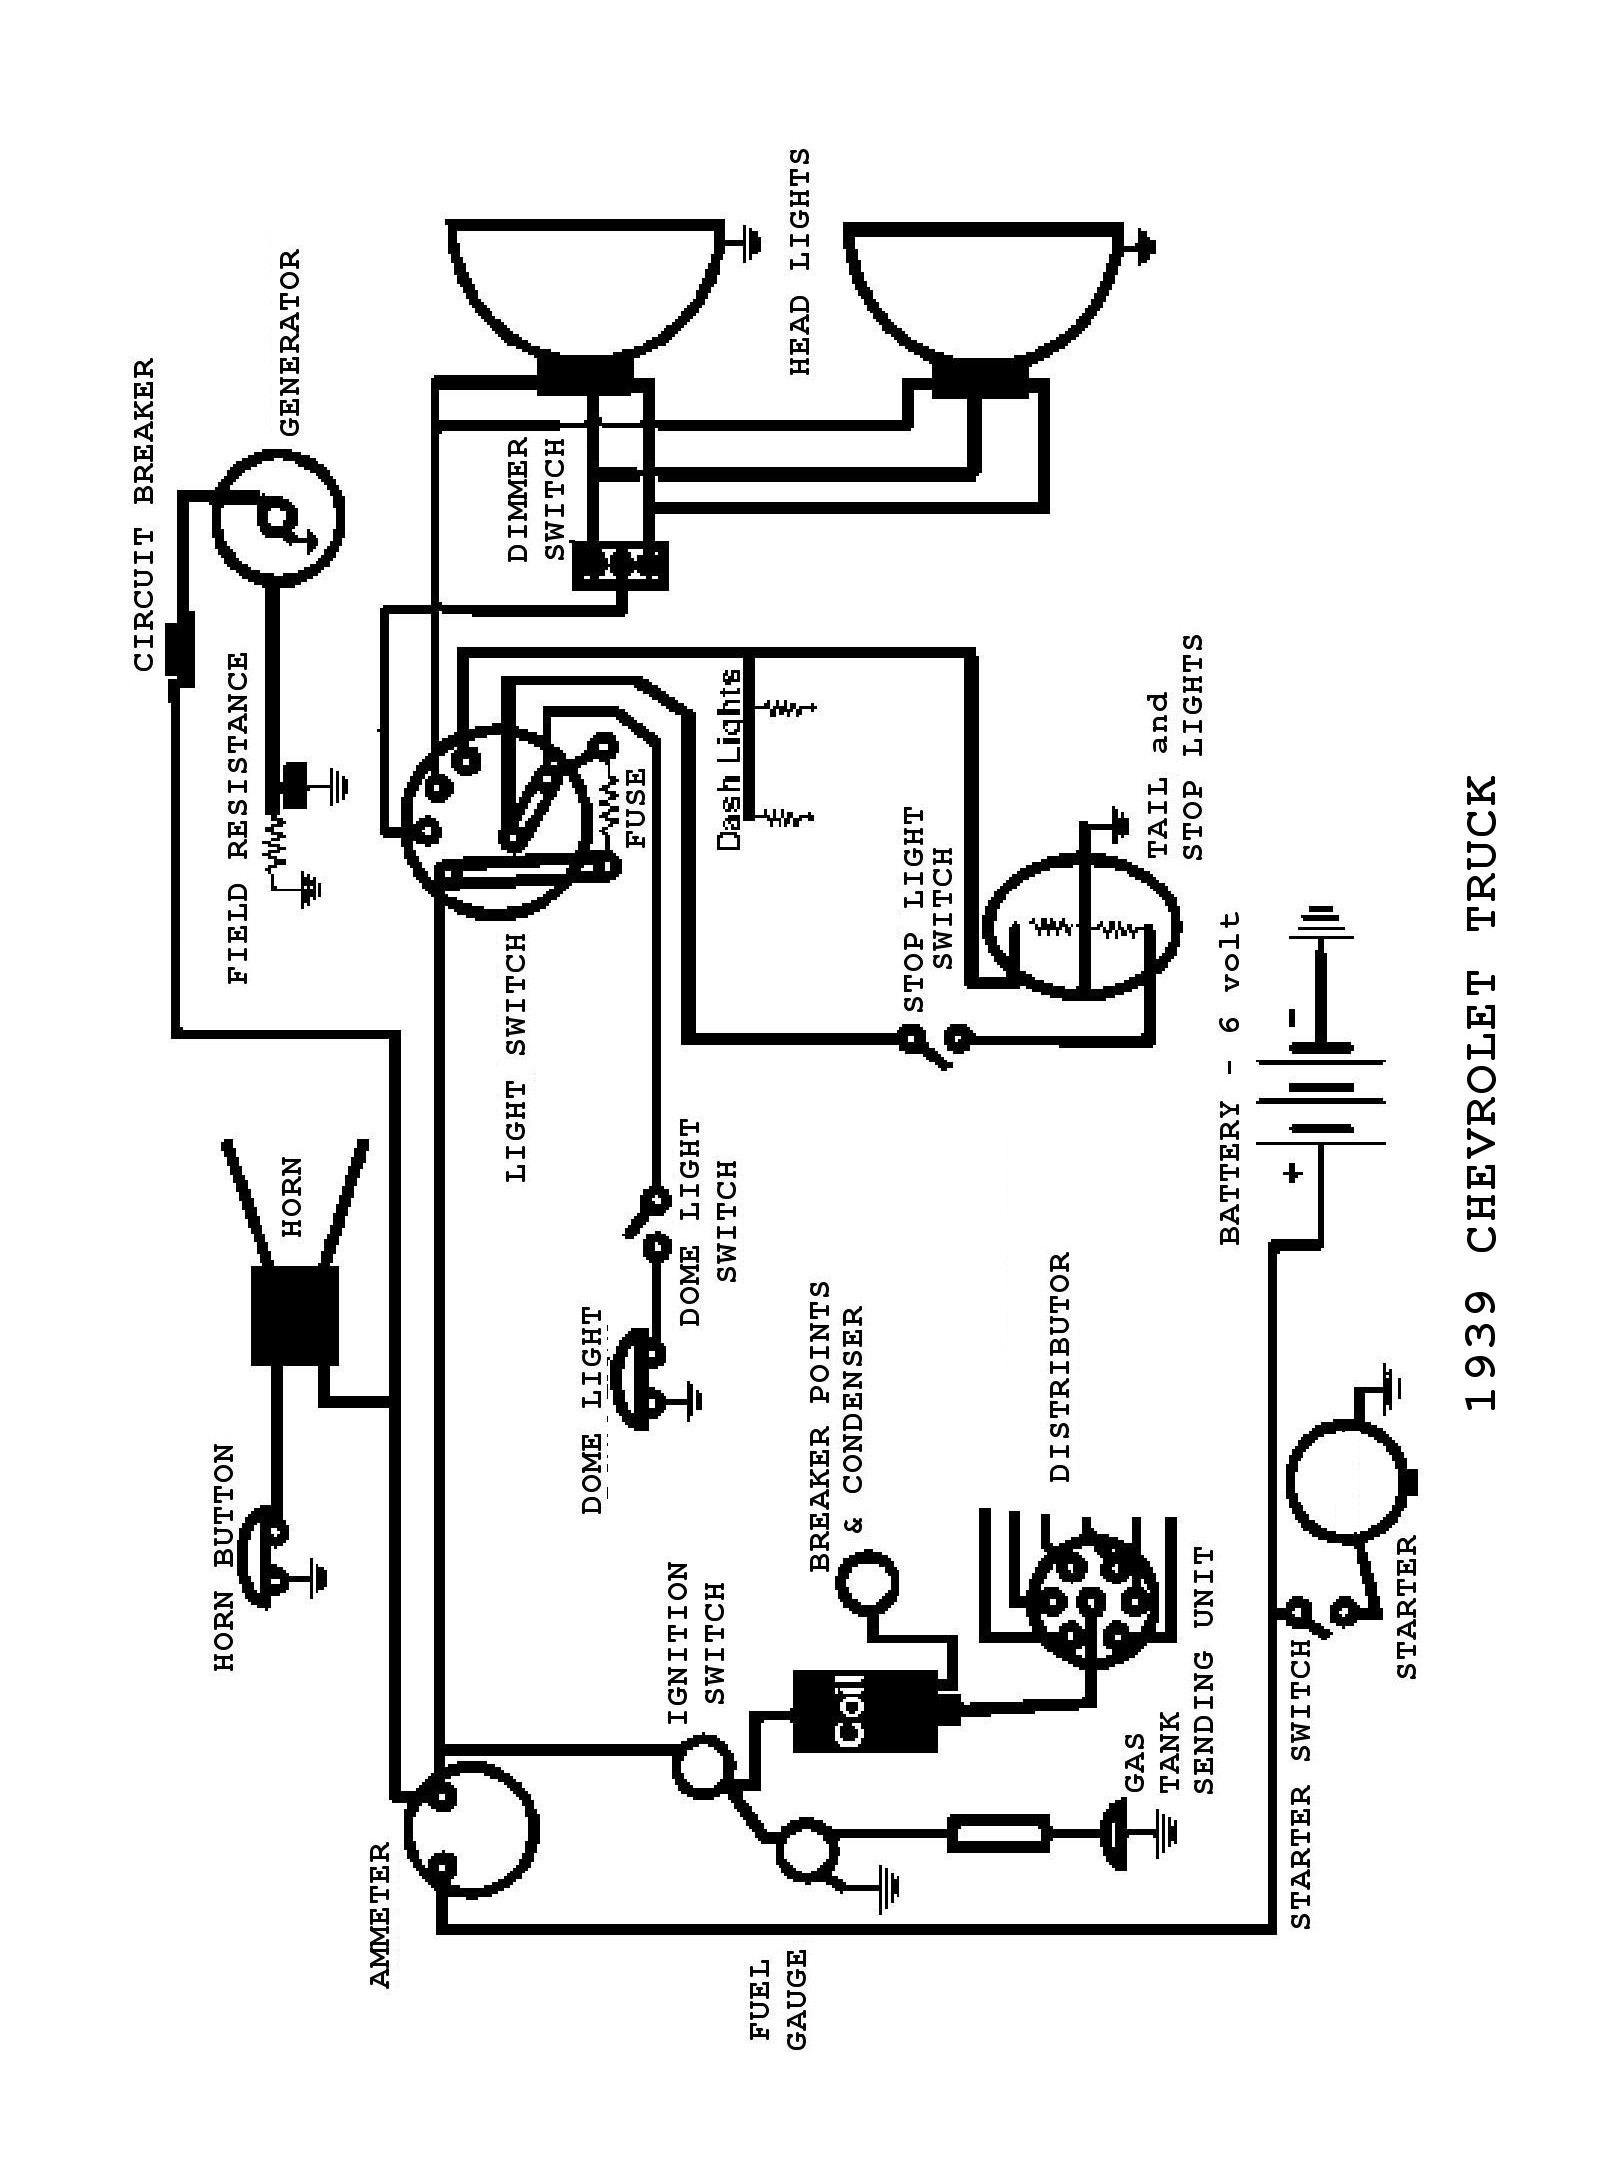 farmall 460 light wiring diagram ih 606 wiring diagram wiring diagram  ih 606 wiring diagram wiring diagram